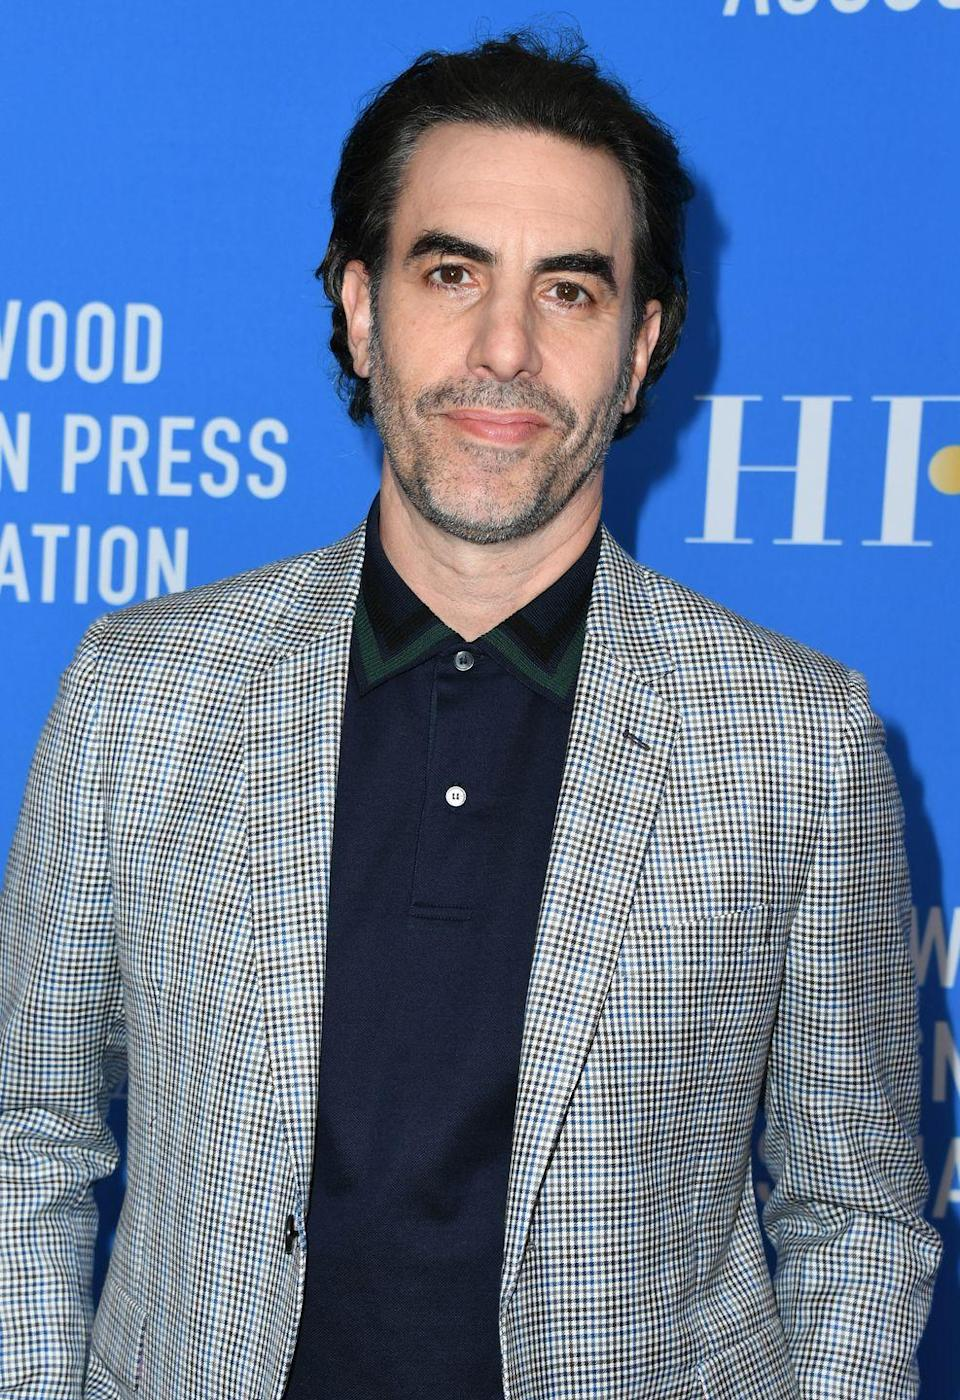 <p>He's known for taking his characters to extreme. If there's any place to test out new material, a hosting gig on <em>SNL</em> would be the perfect place to do so. </p>